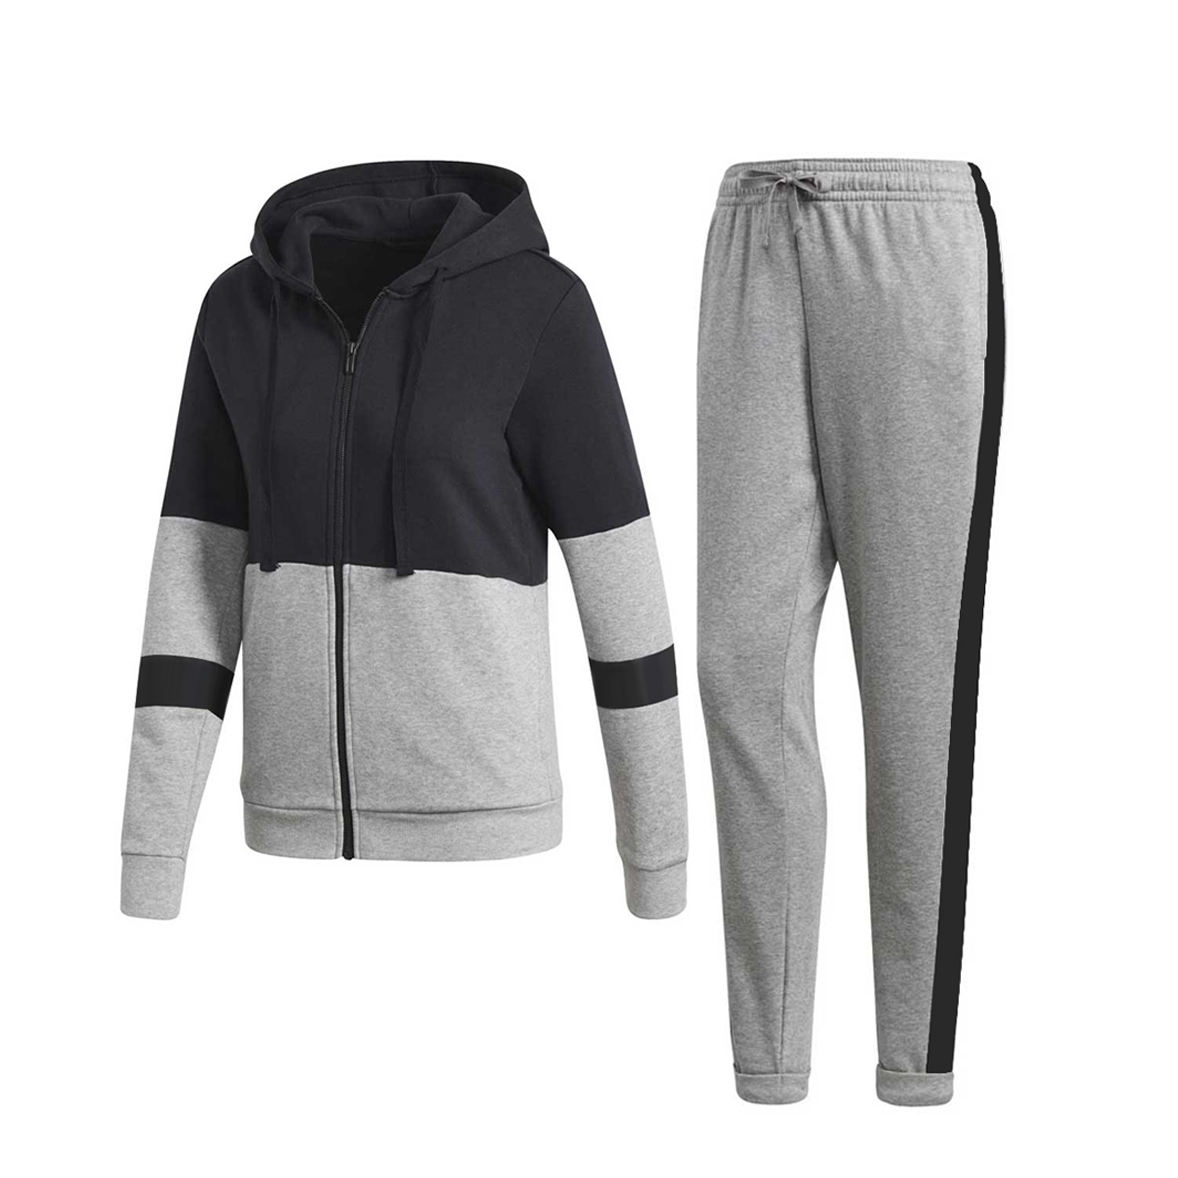 Wholesale 100% Polyester Sportswear Track Suits